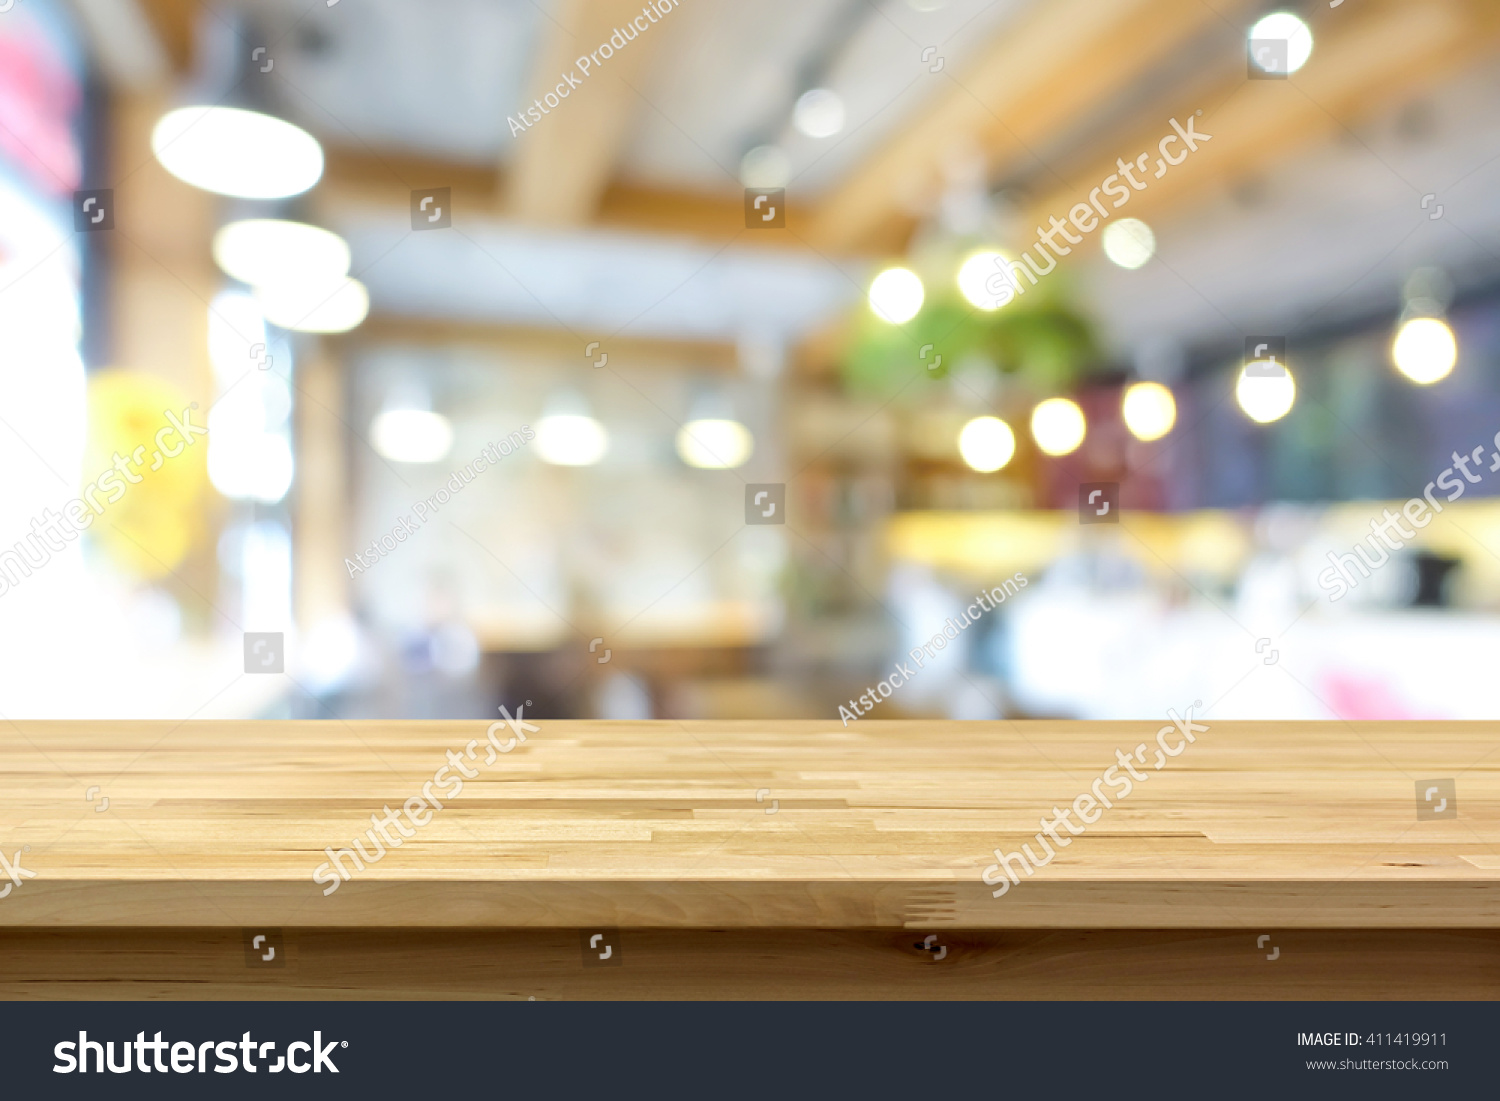 wood table top on blur background stock photo 411419911 - shutterstock